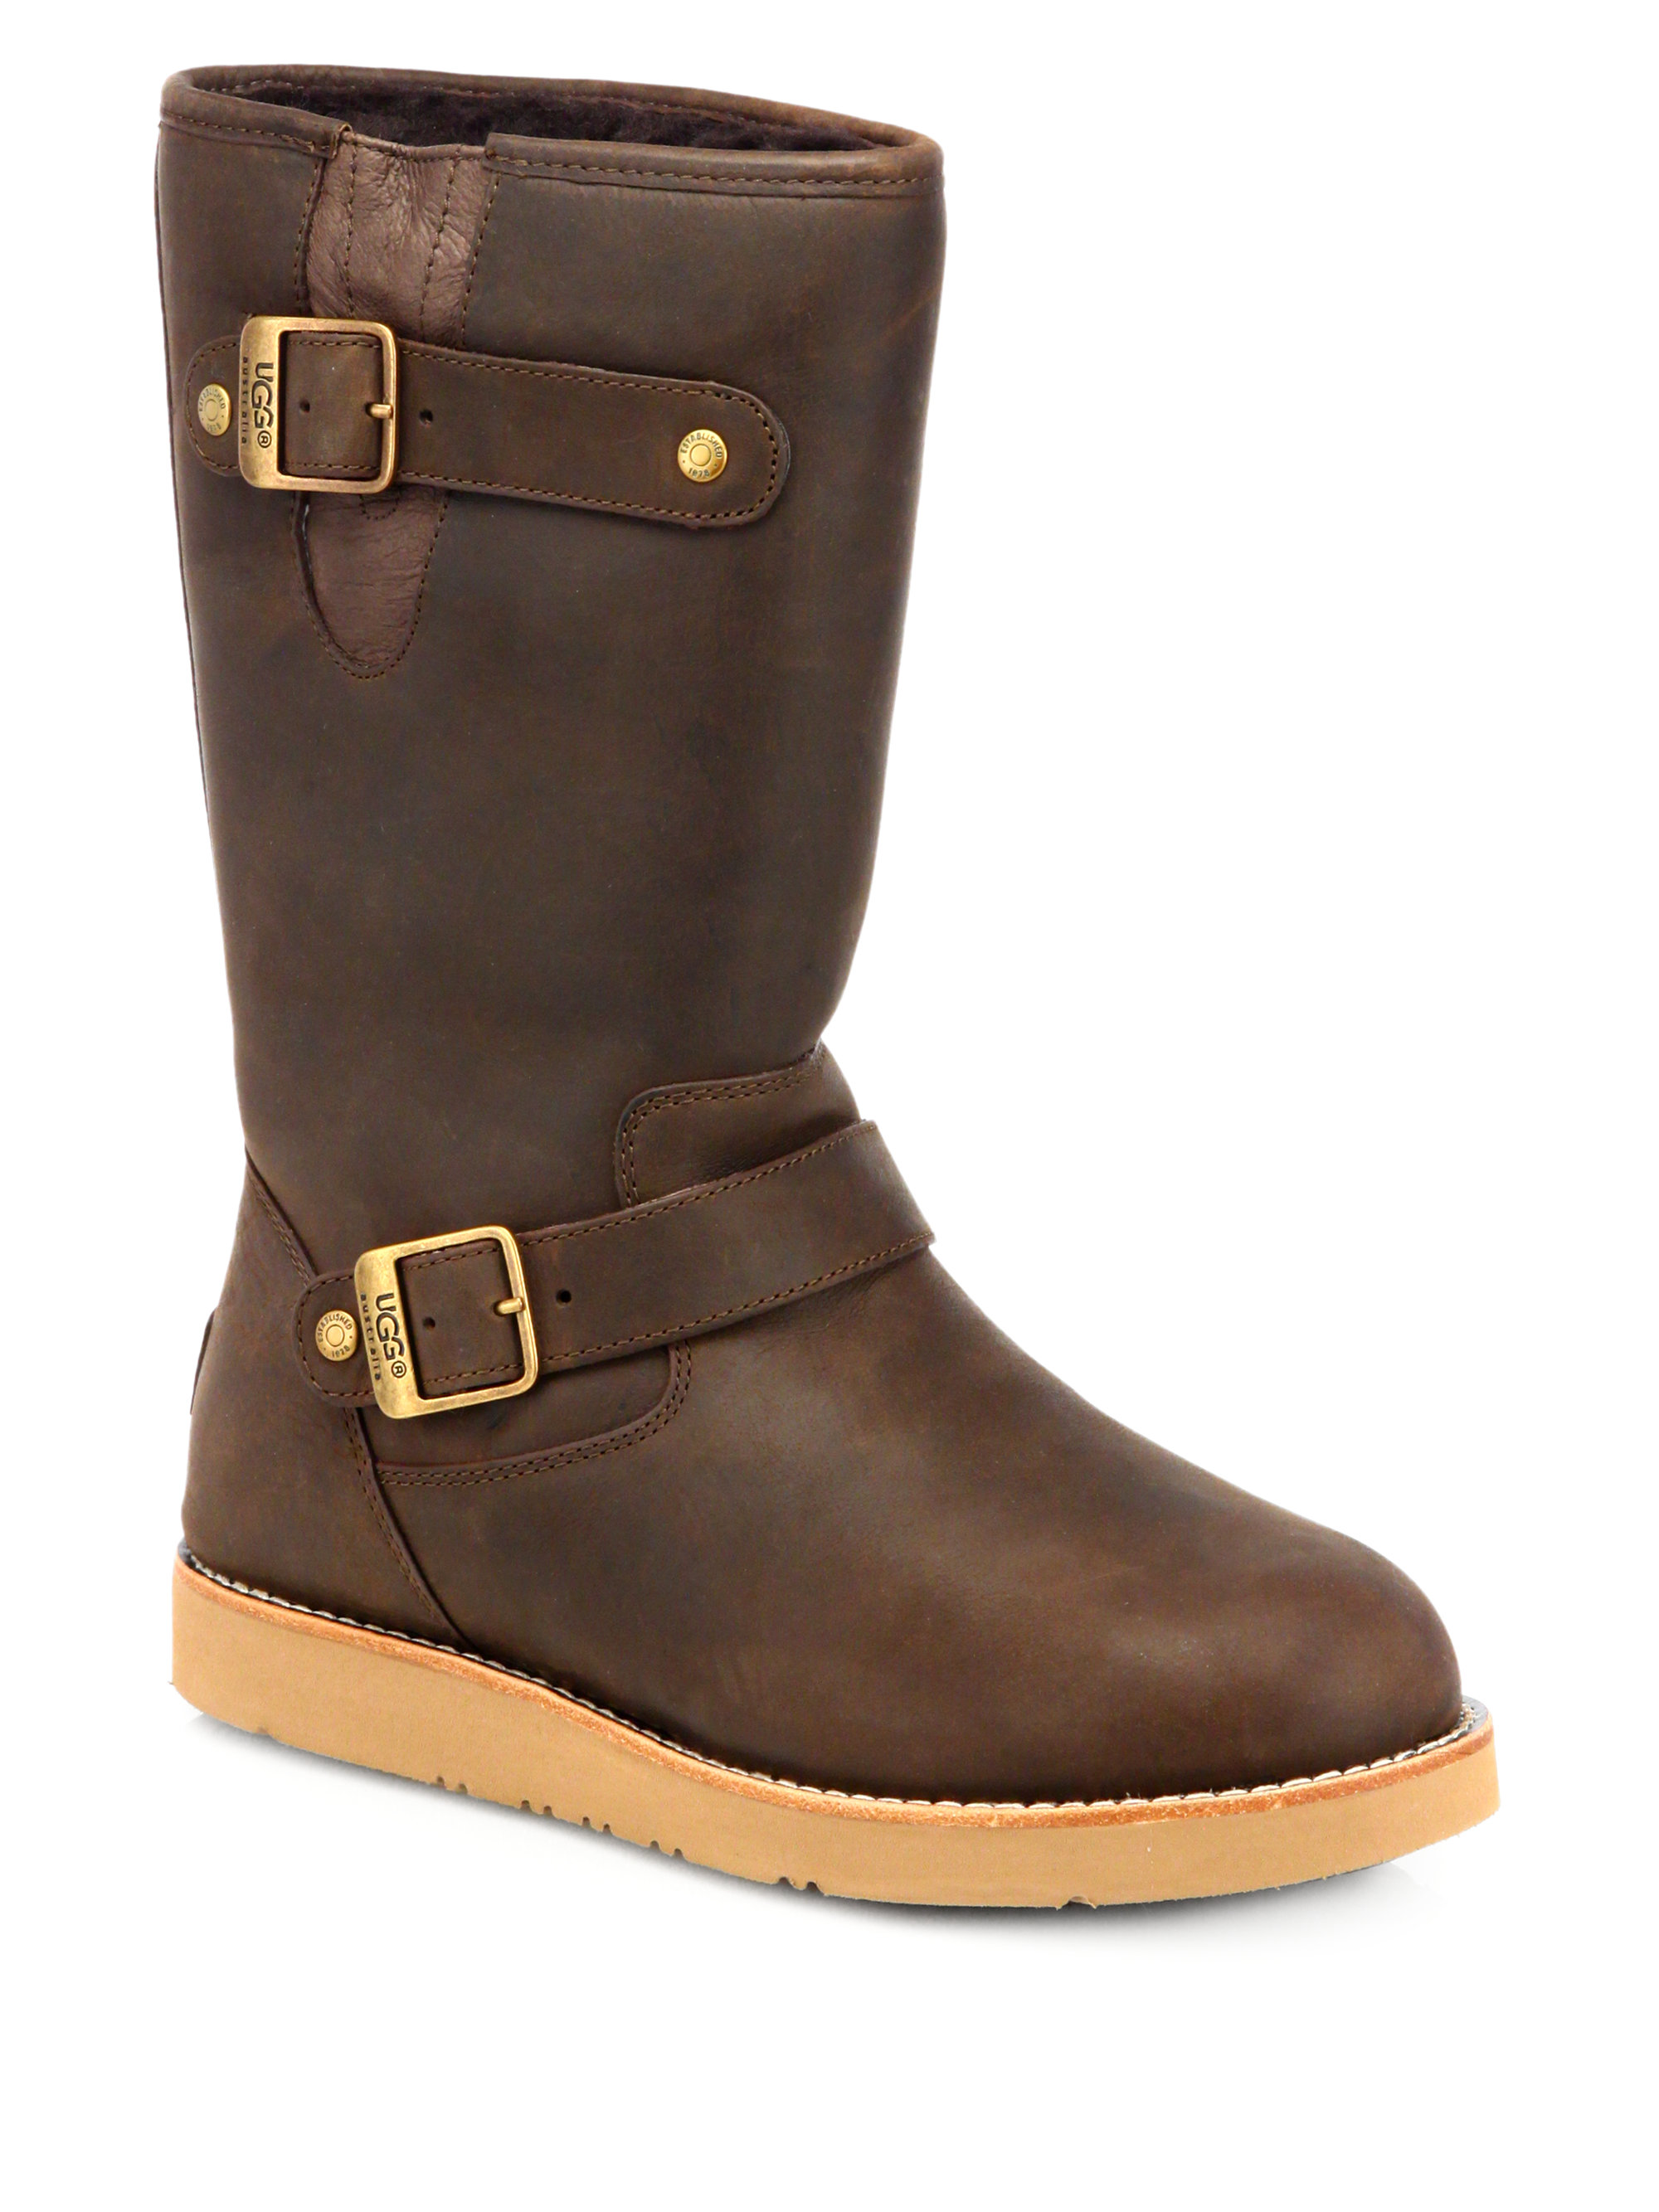 Ugg Kensington Leather Woollined Boots In Brown Lyst